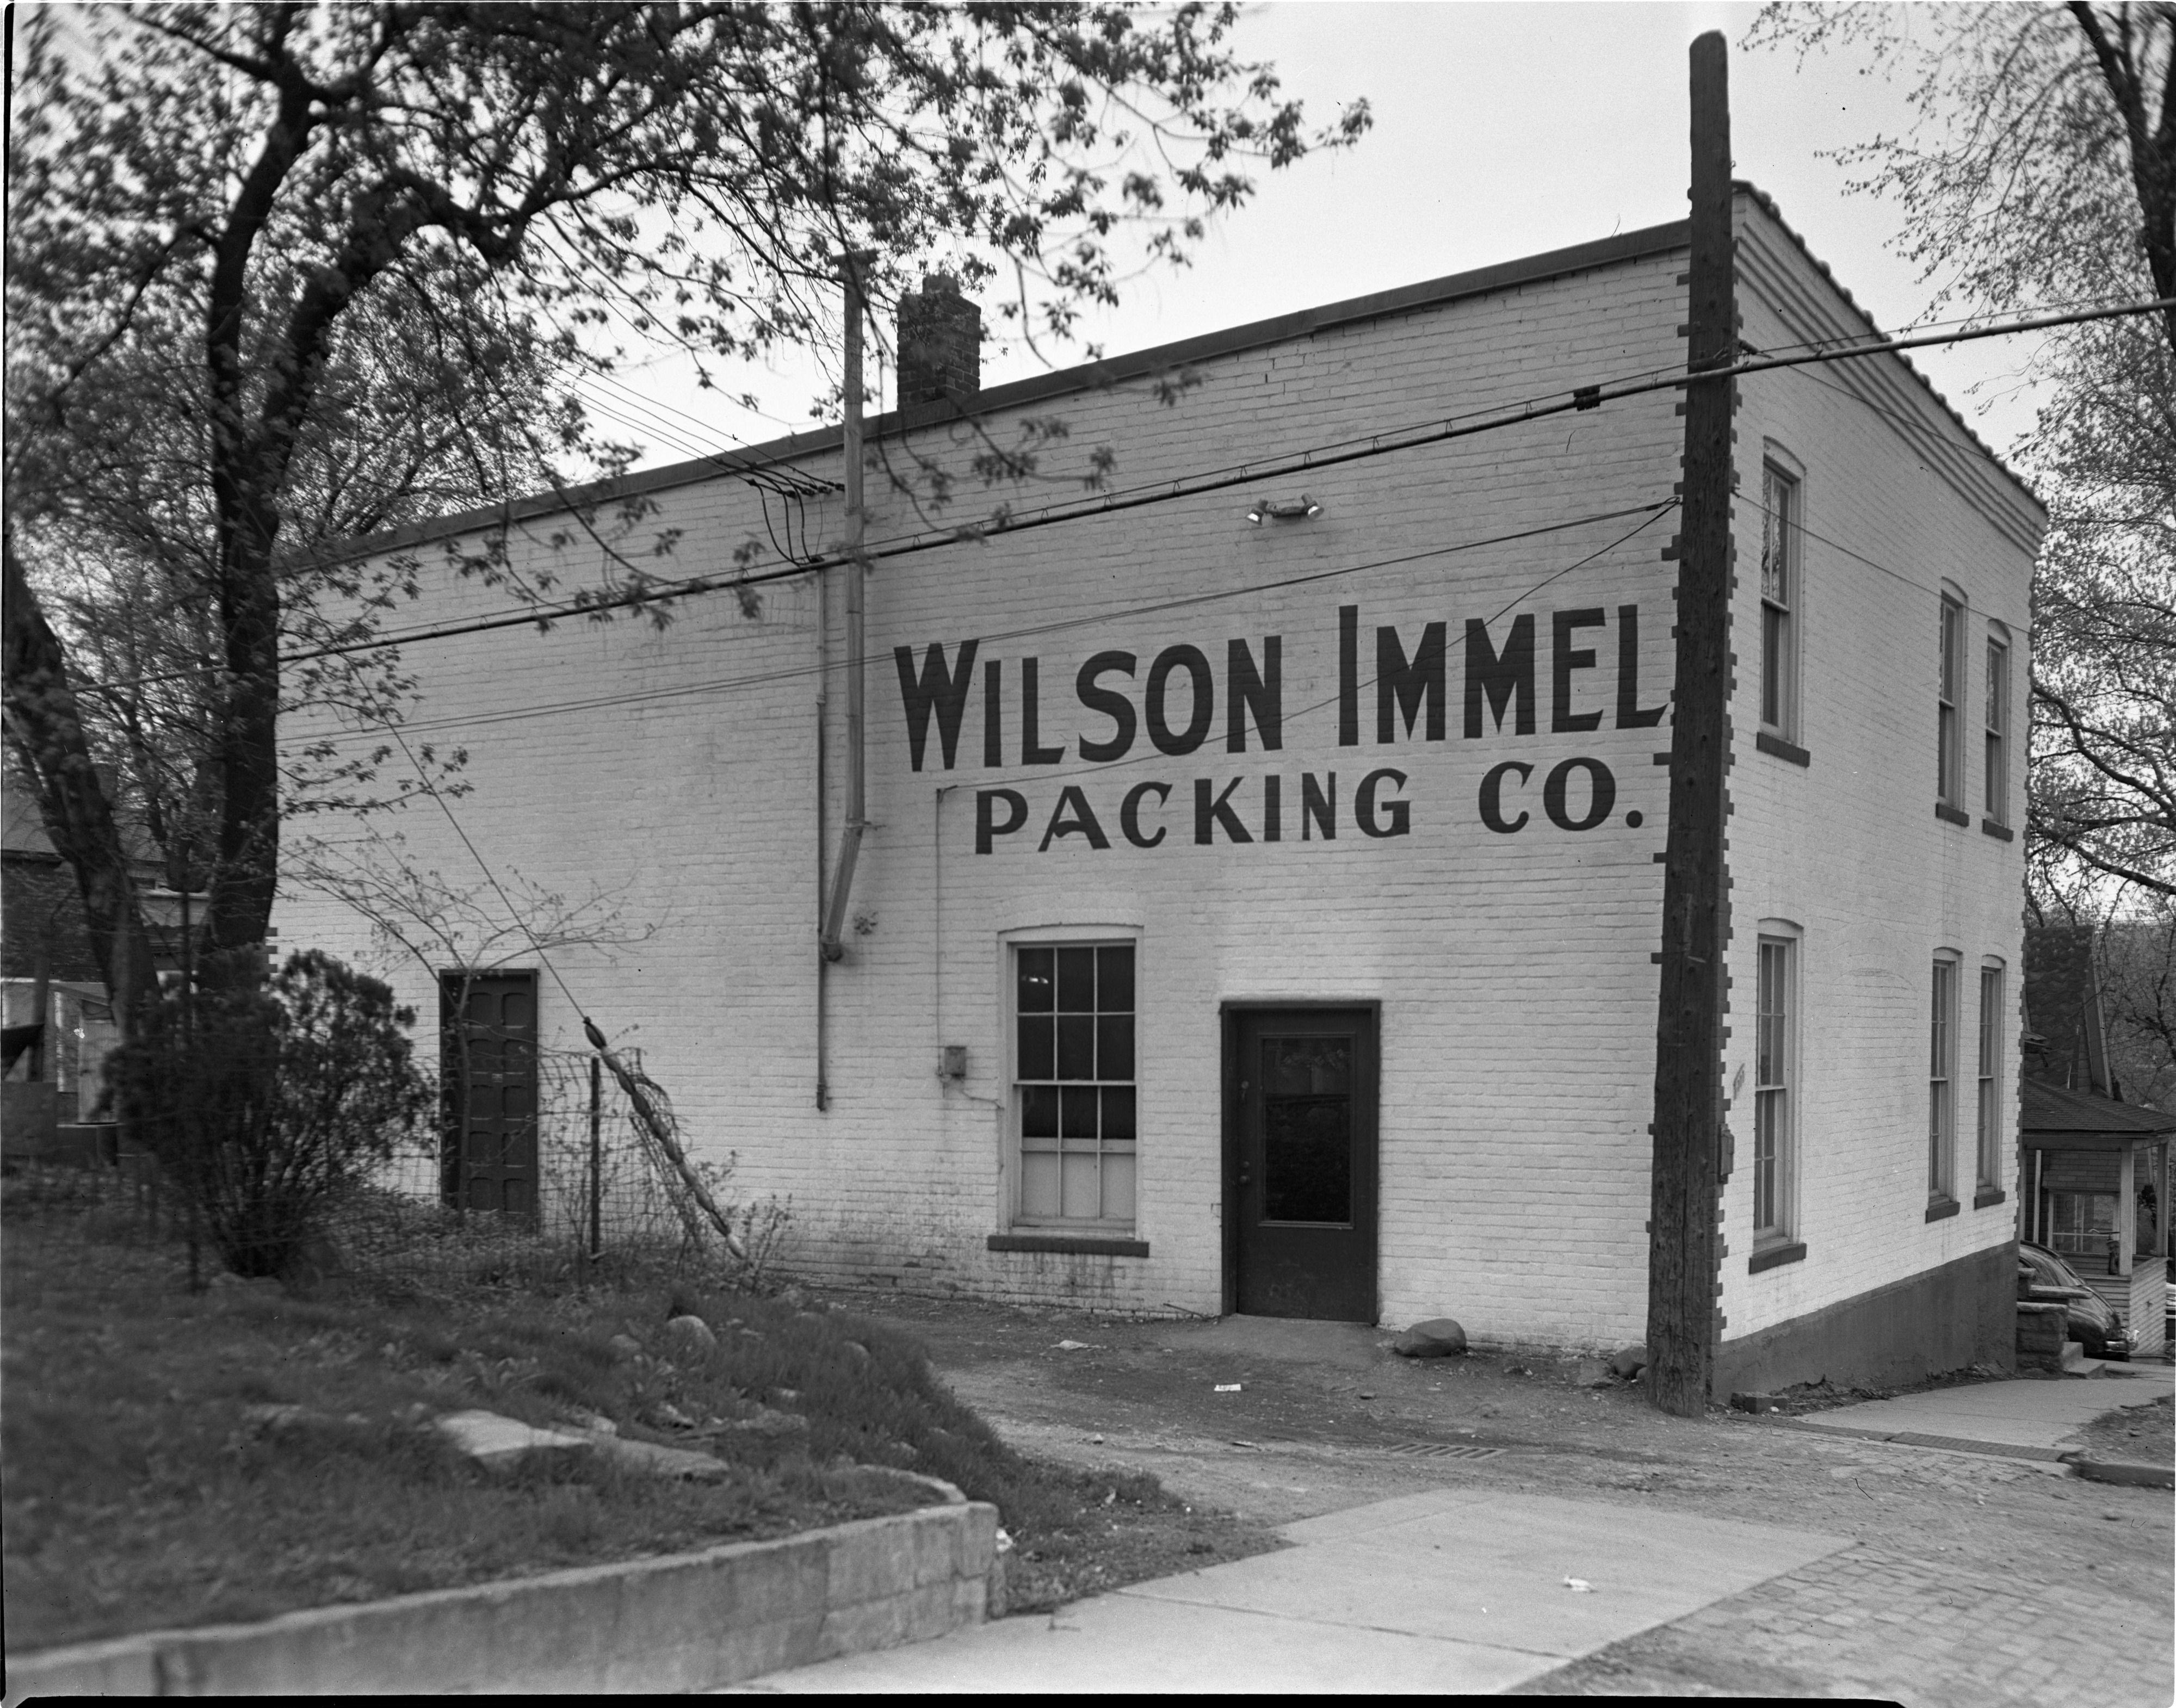 Wilson Immel Packing Co., May 1950 image